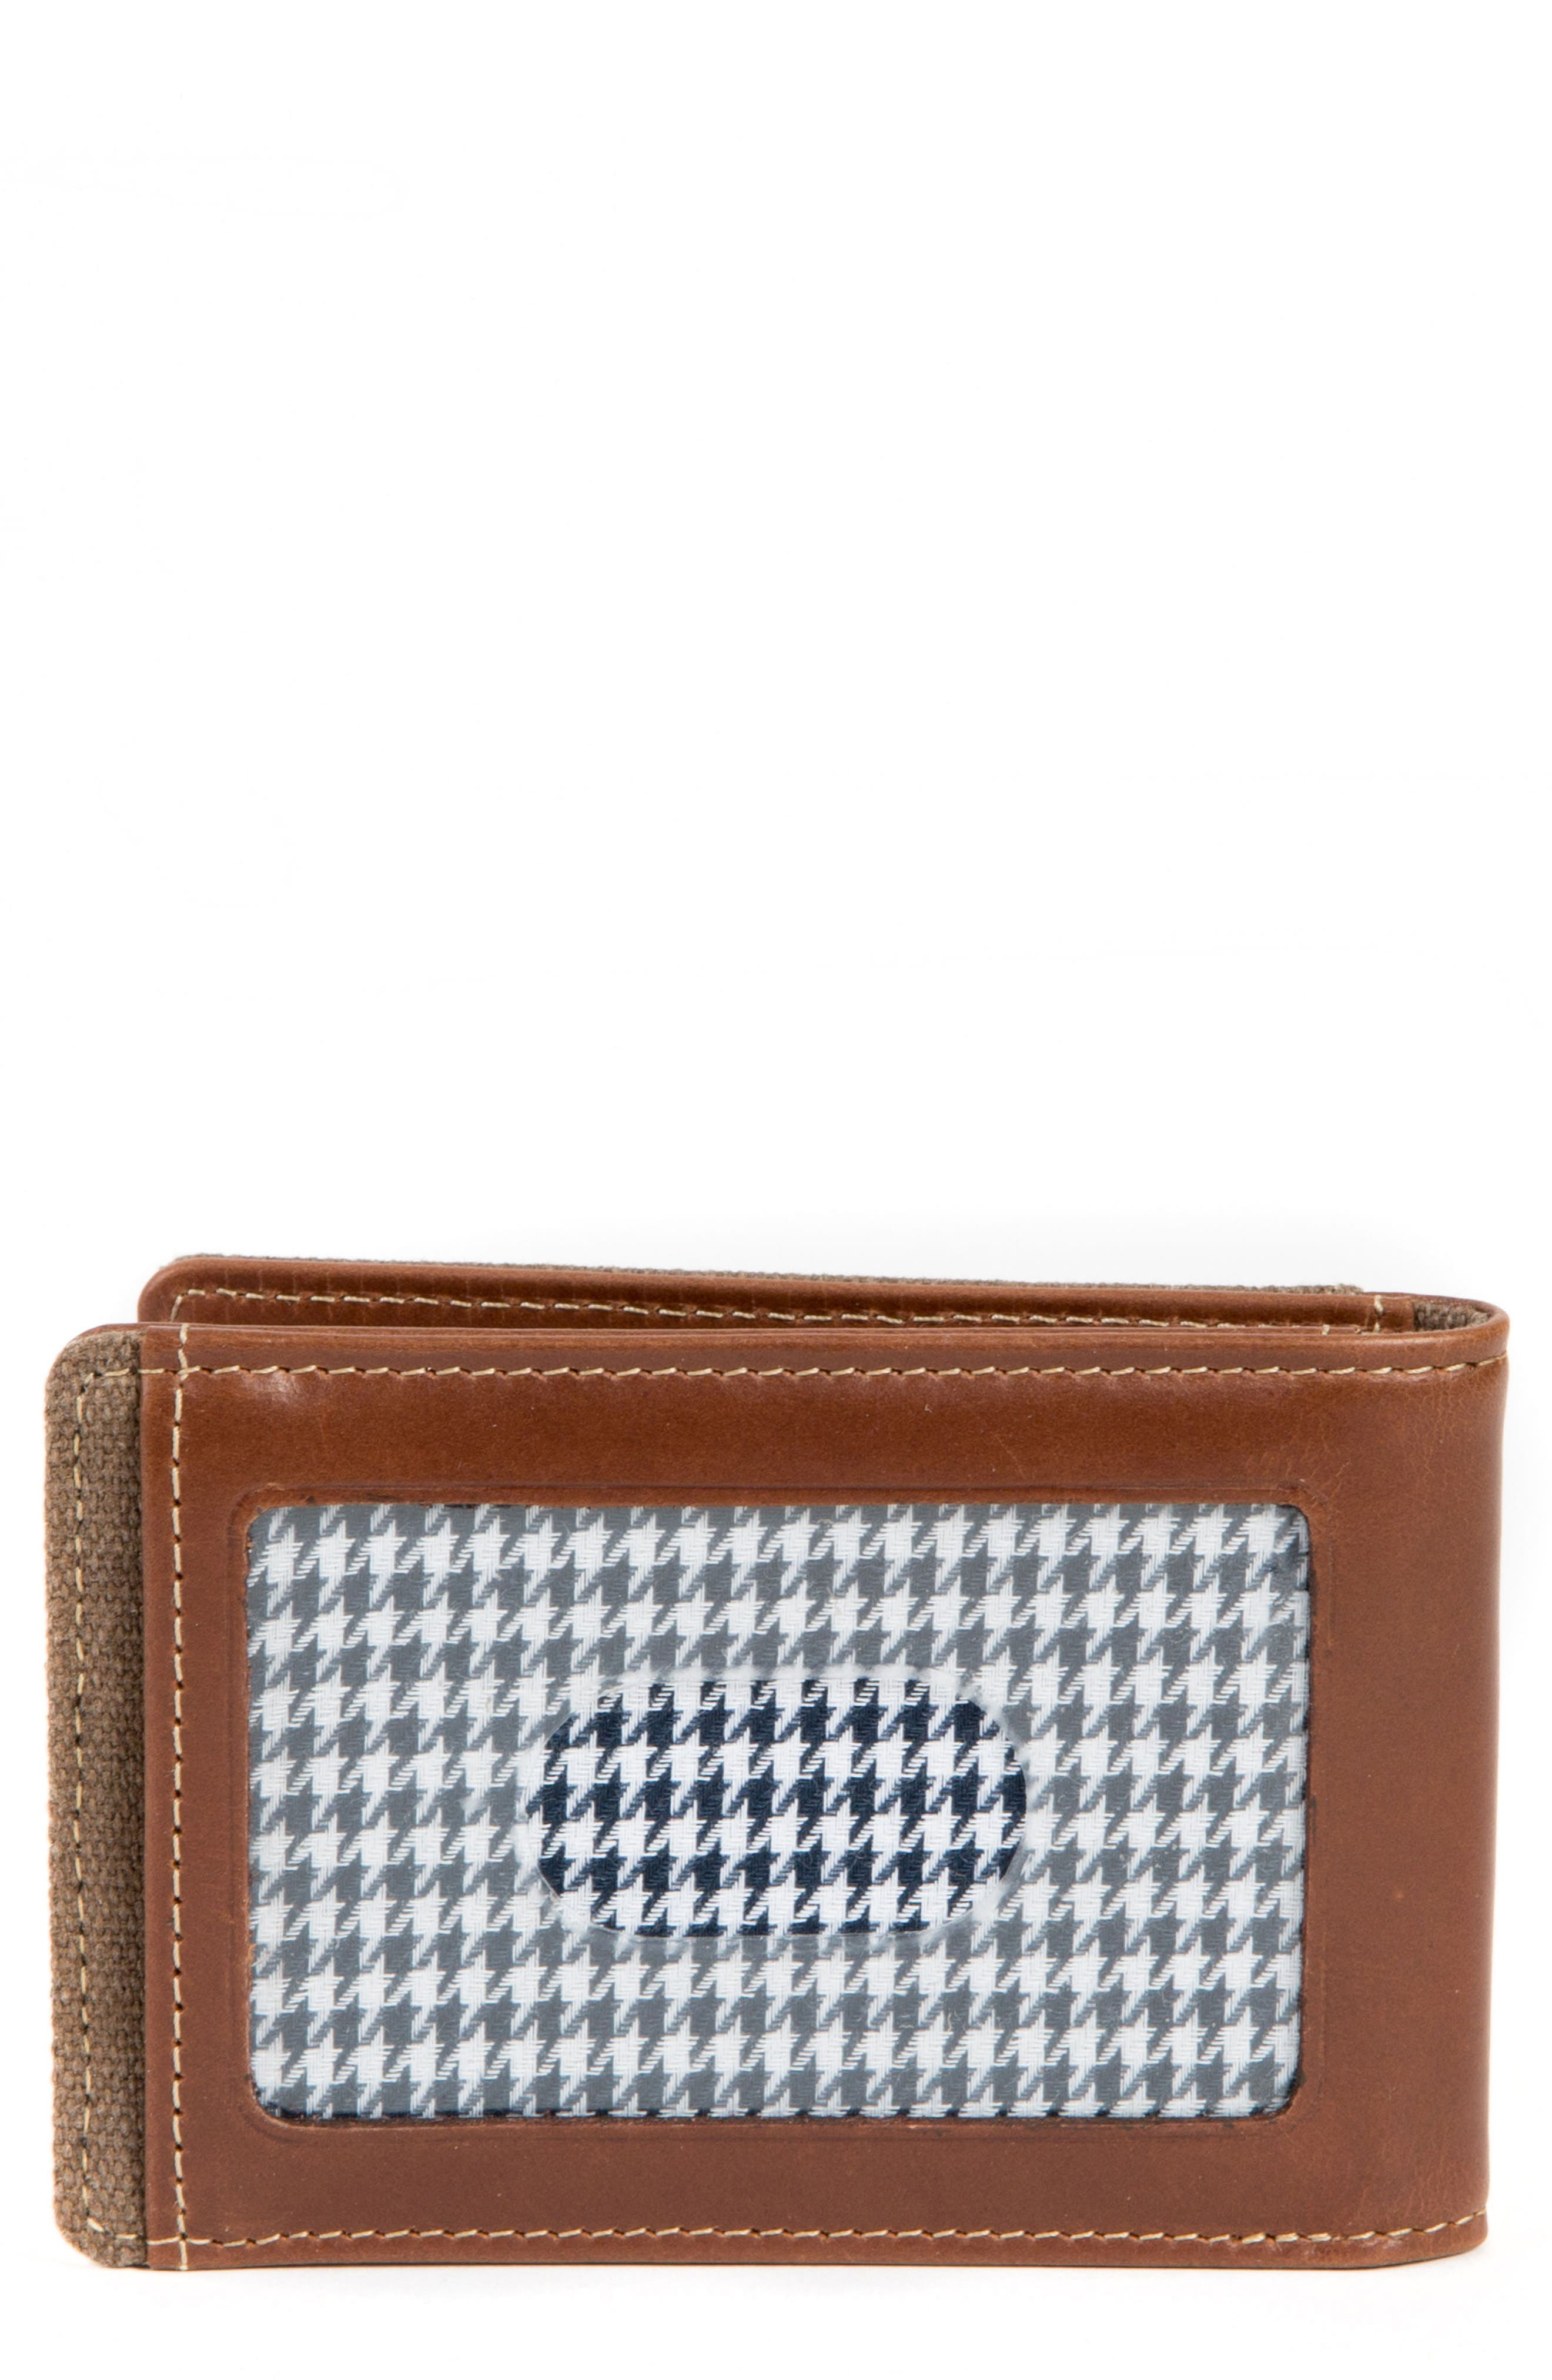 Bryant Bifold Money Clip Wallet,                         Main,                         color, MAHOGANY/ HEATHER